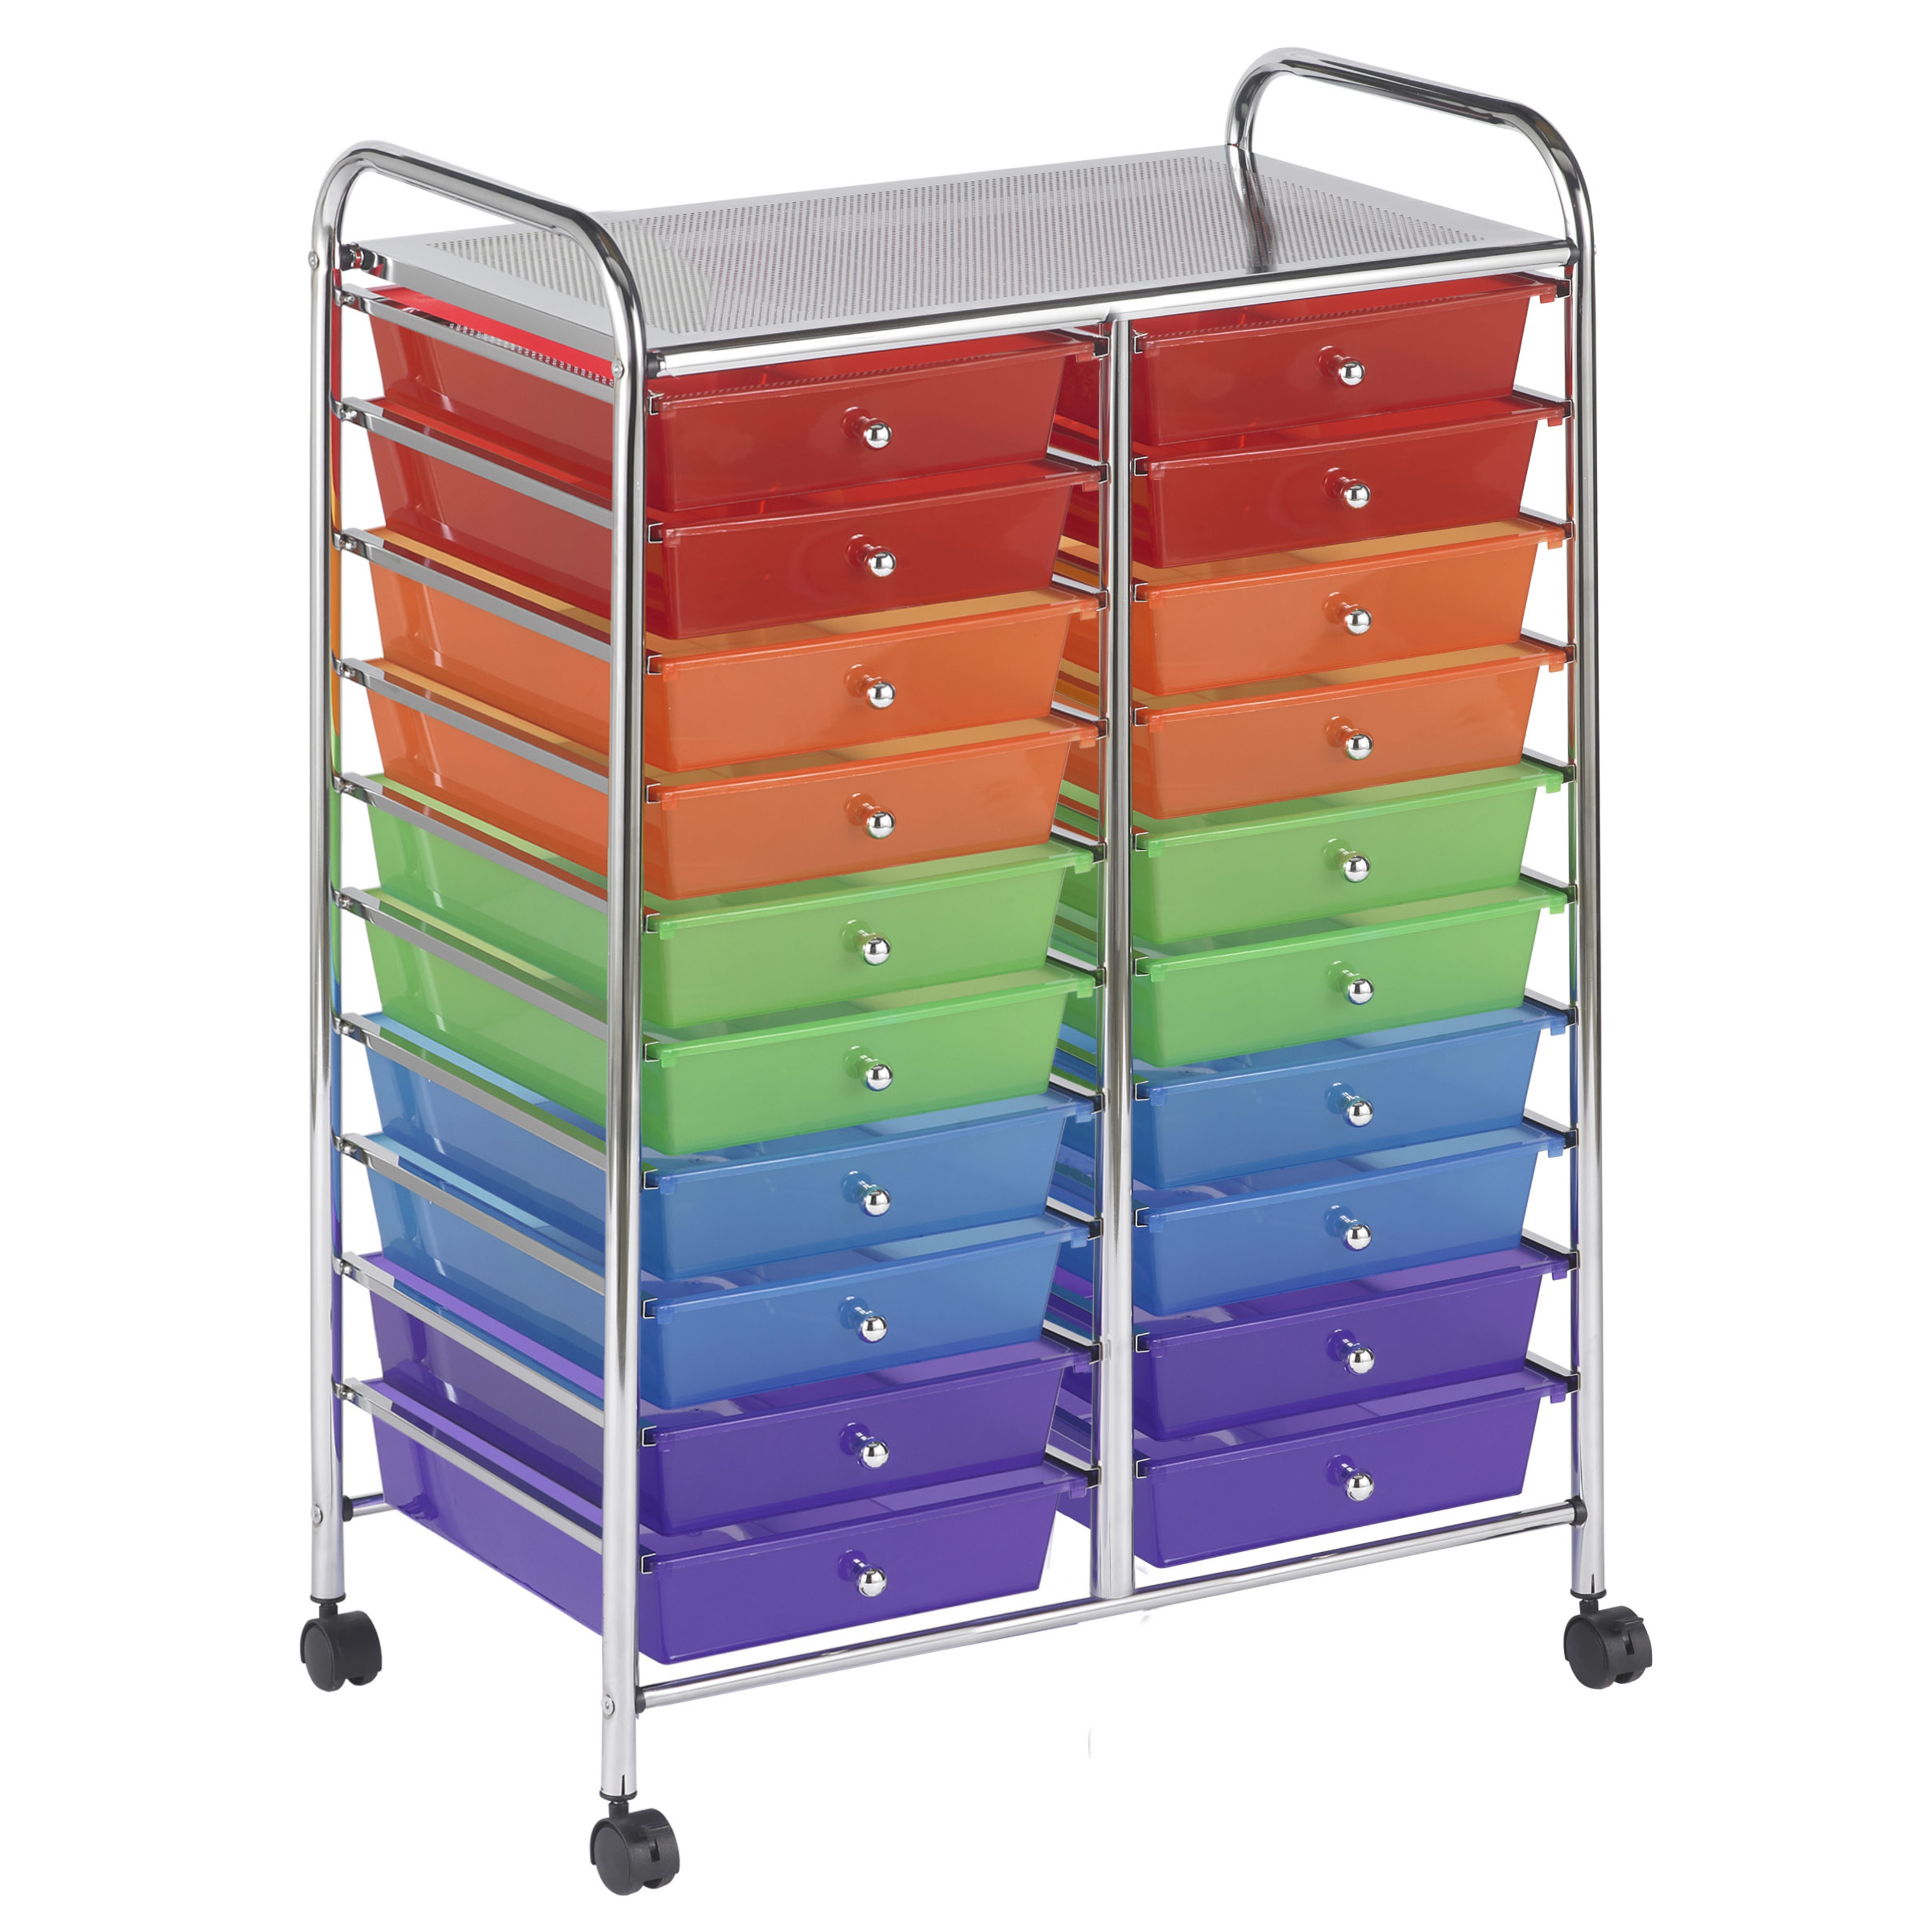 20 Drawer Mobile Organizer - Grayscale